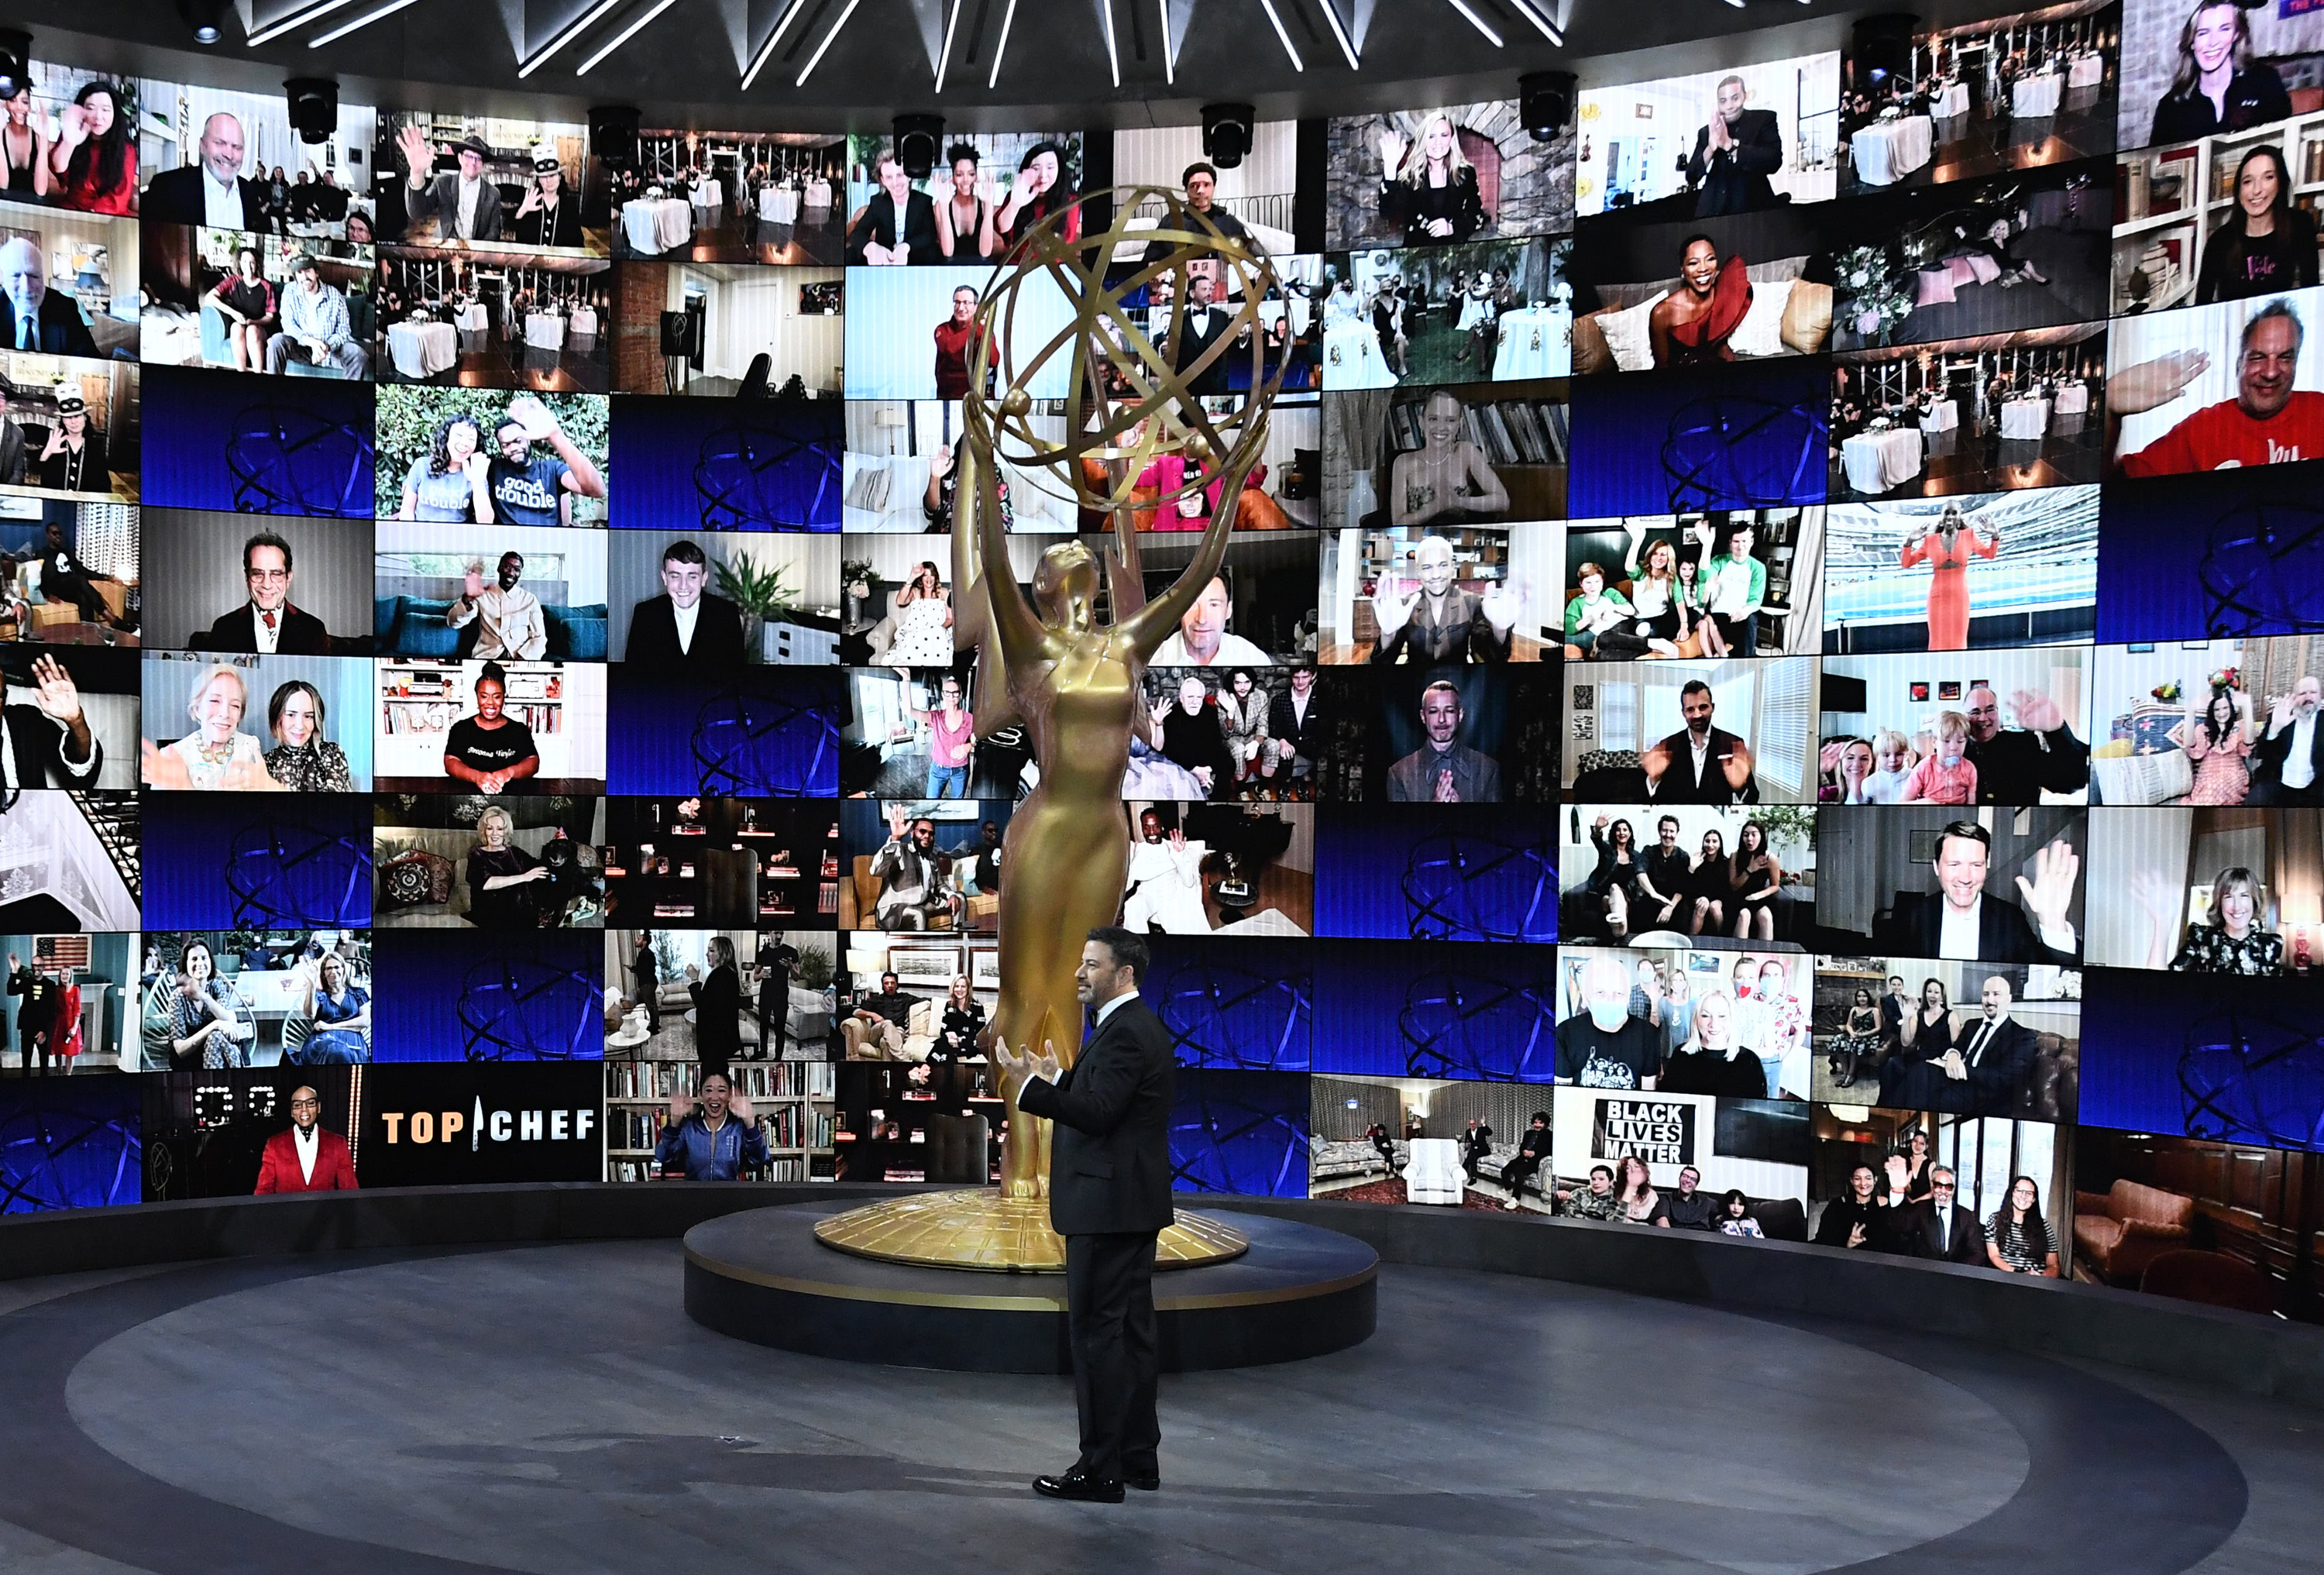 2020 Emmy Awards: Top Moments From the Show - NECN